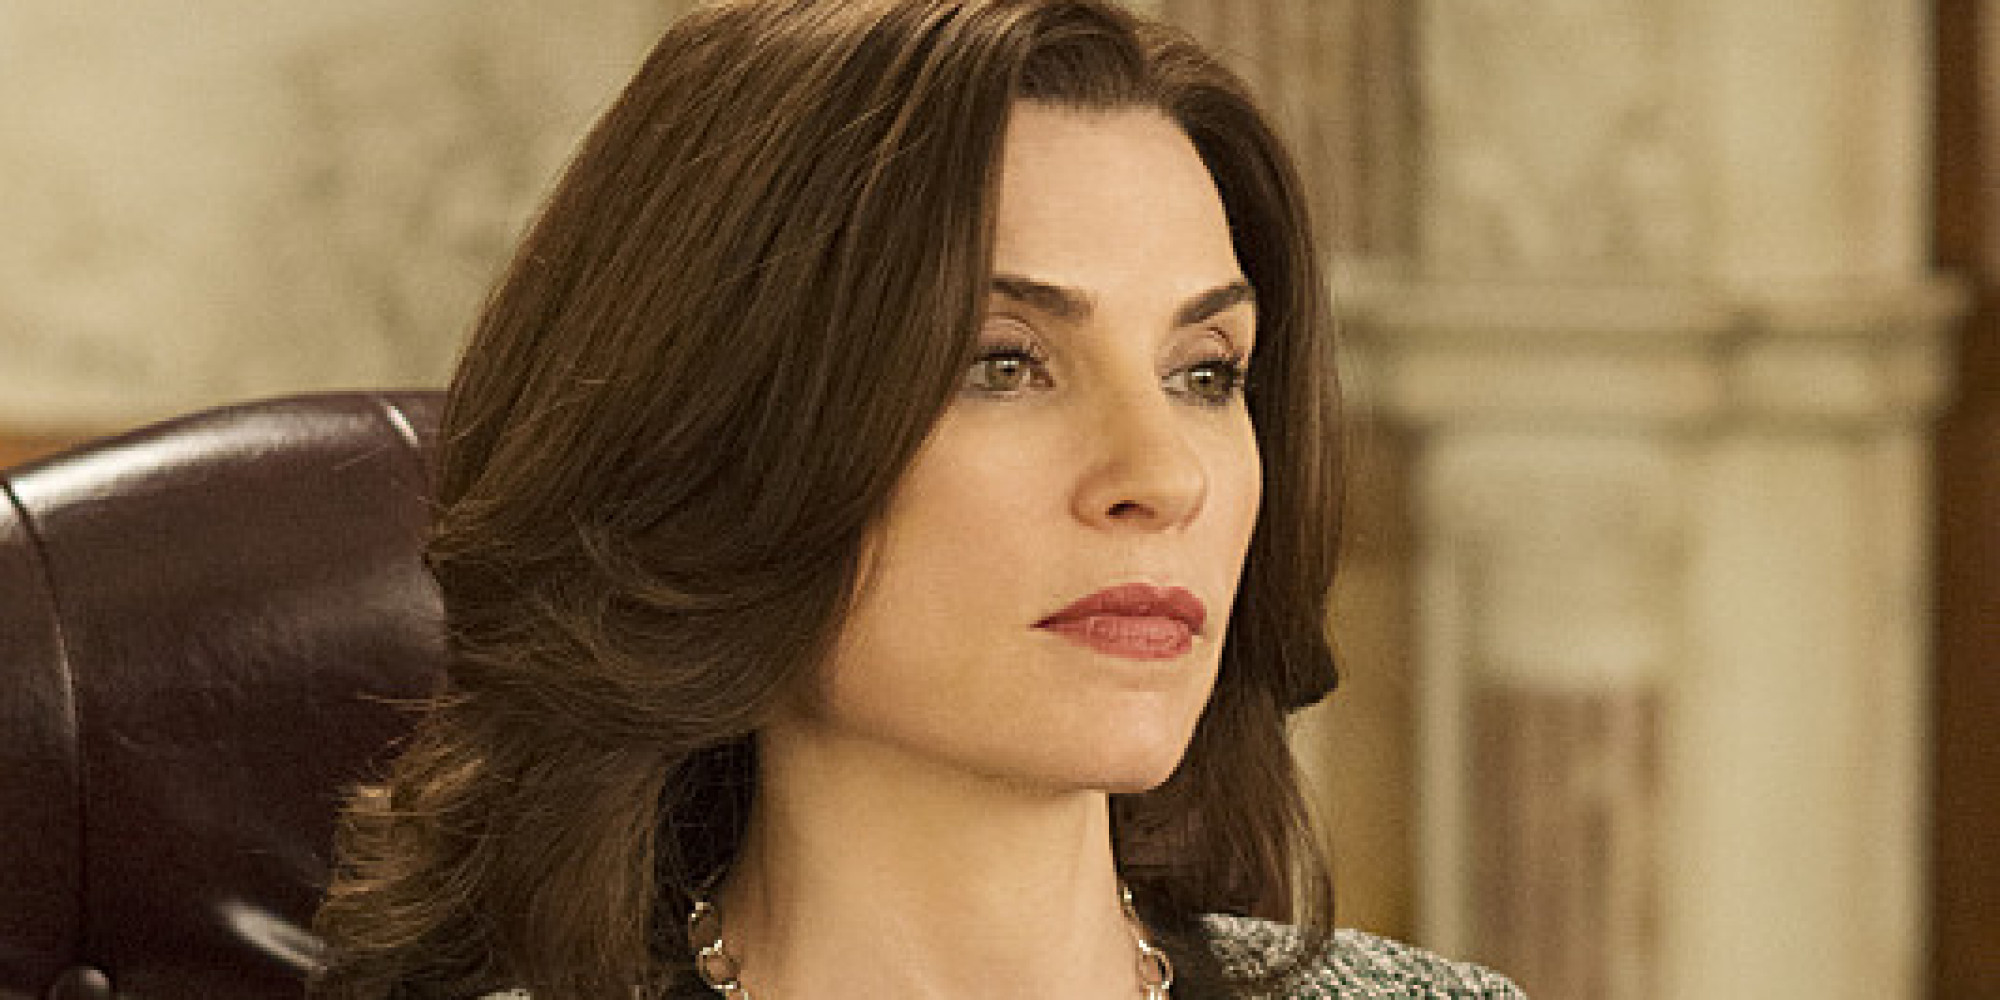 Julianna Margulies Quotes 50 Wallpapers: THE-GOOD-WIFE Legal Drama Crime Television Good Wife